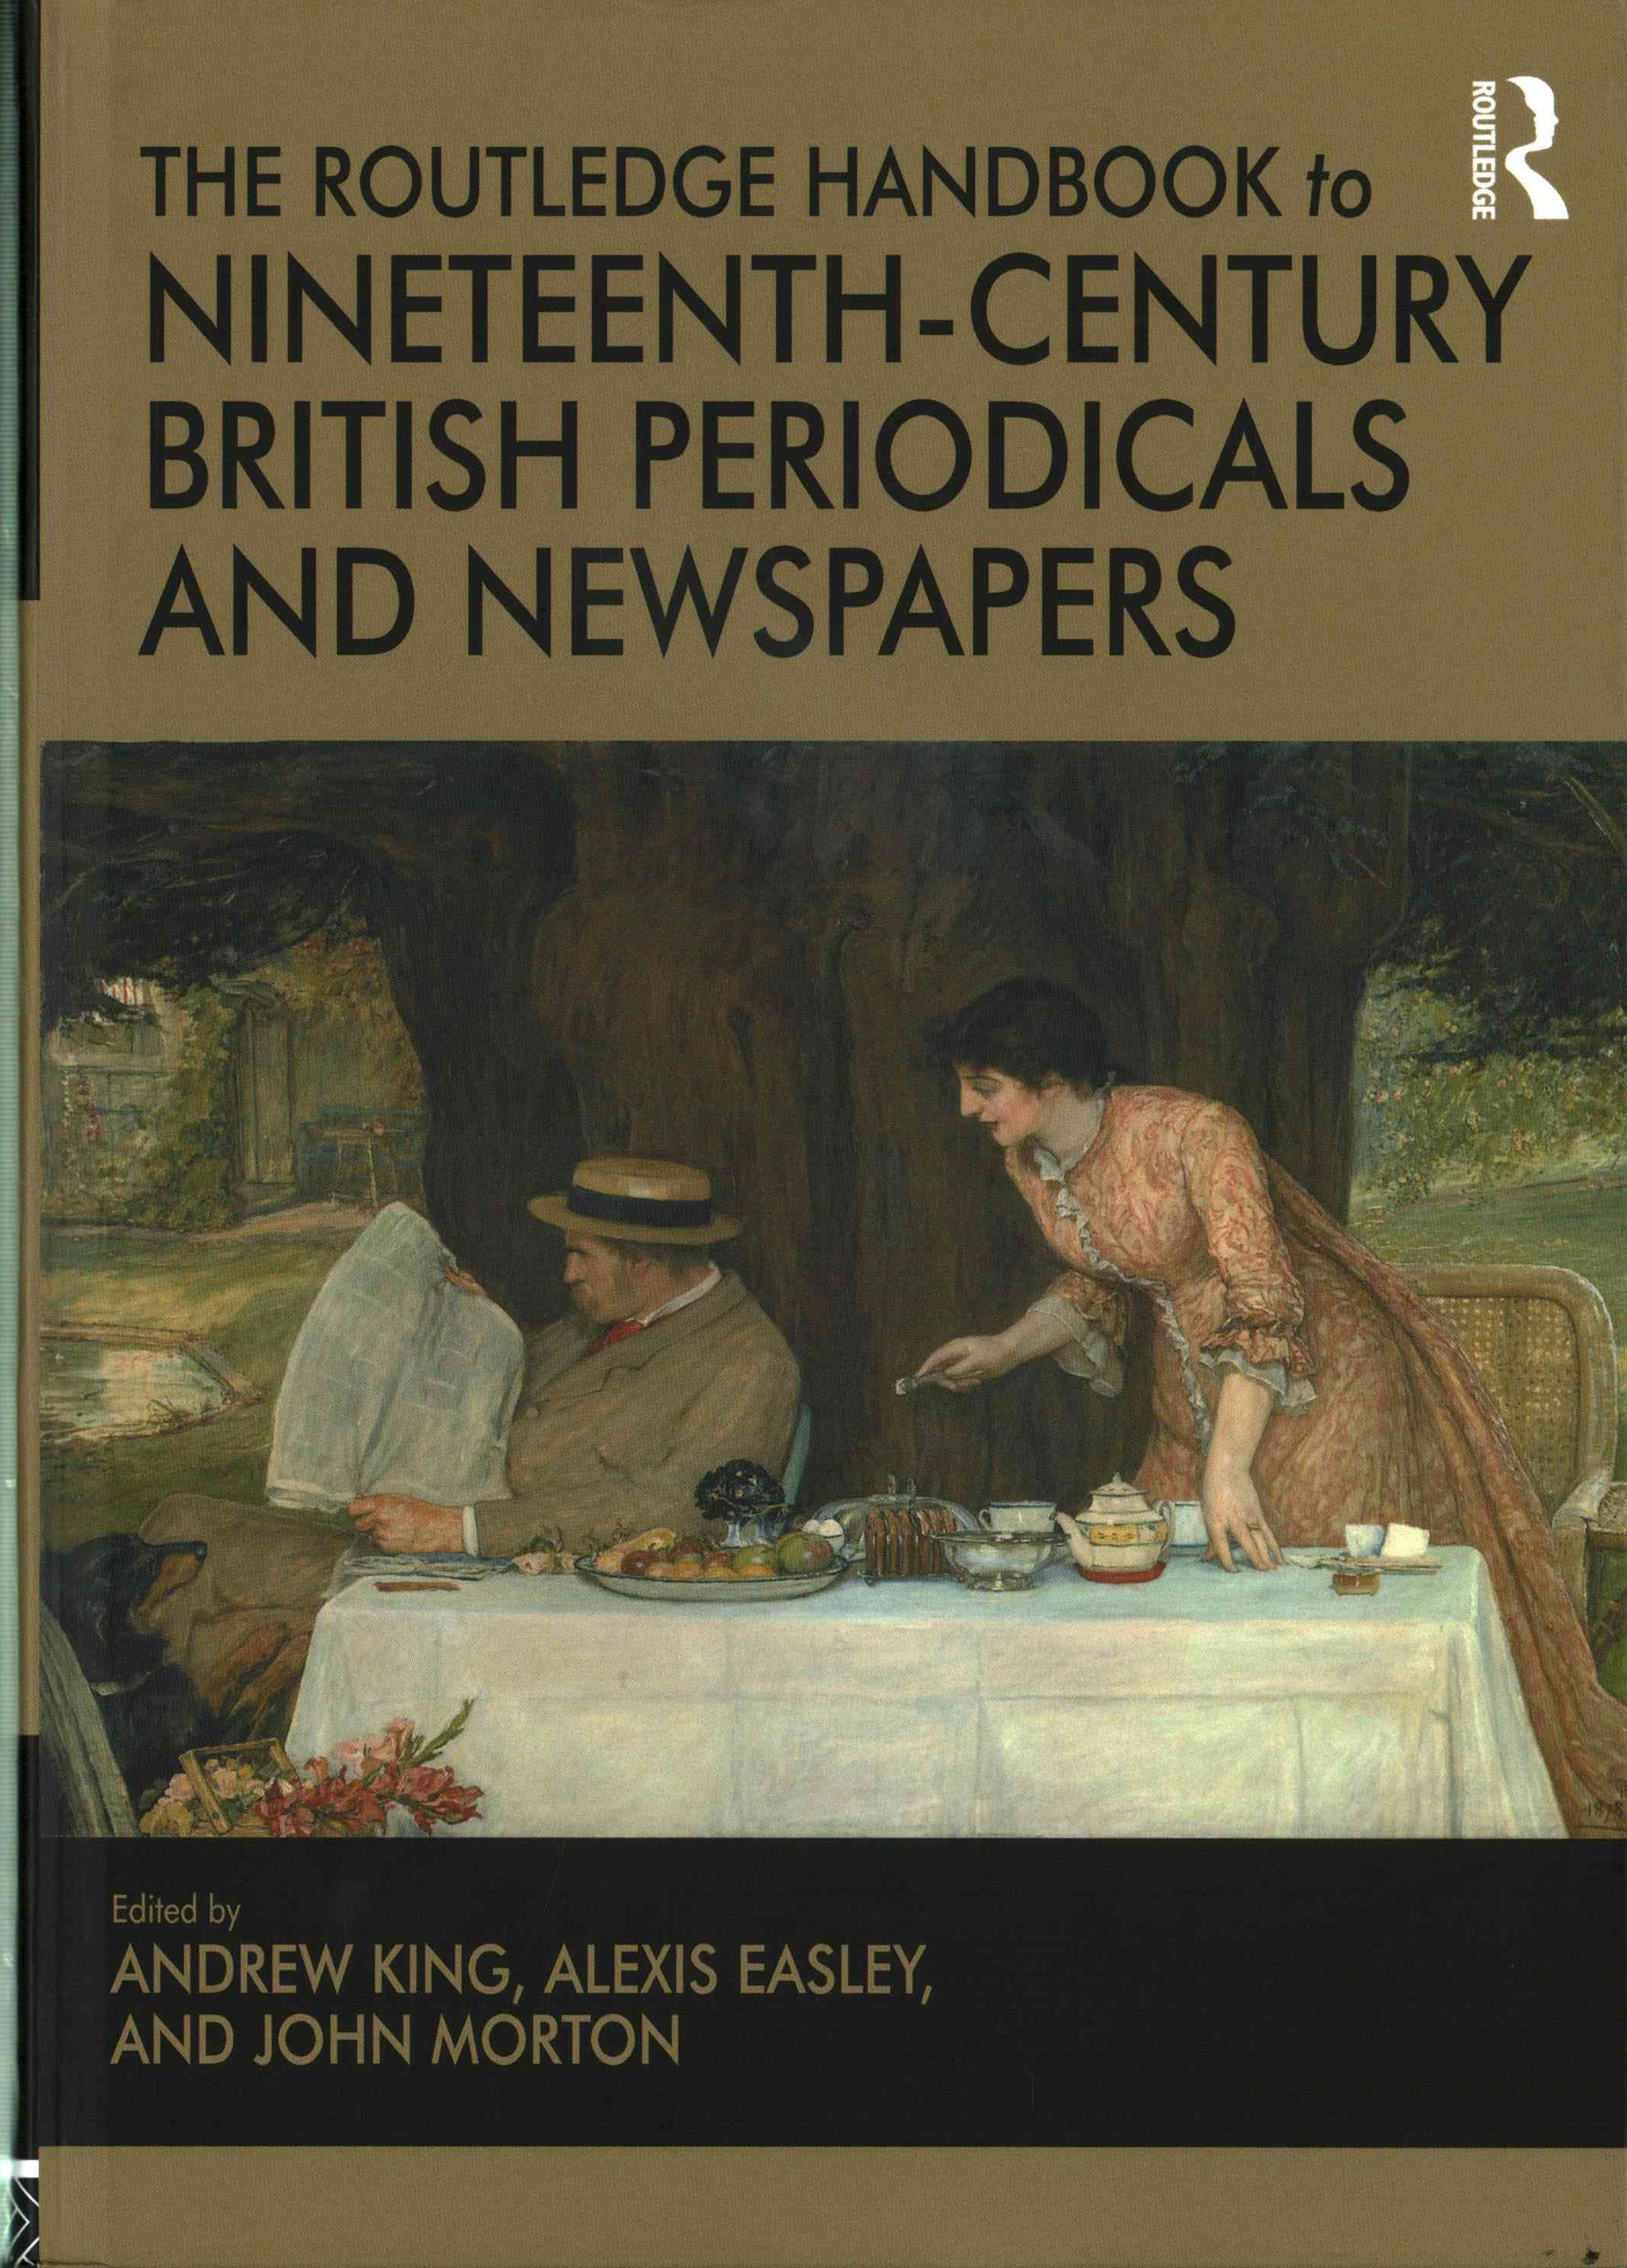 Routledge Handbook to Nineteenth-Century British Periodicals and Newspapers